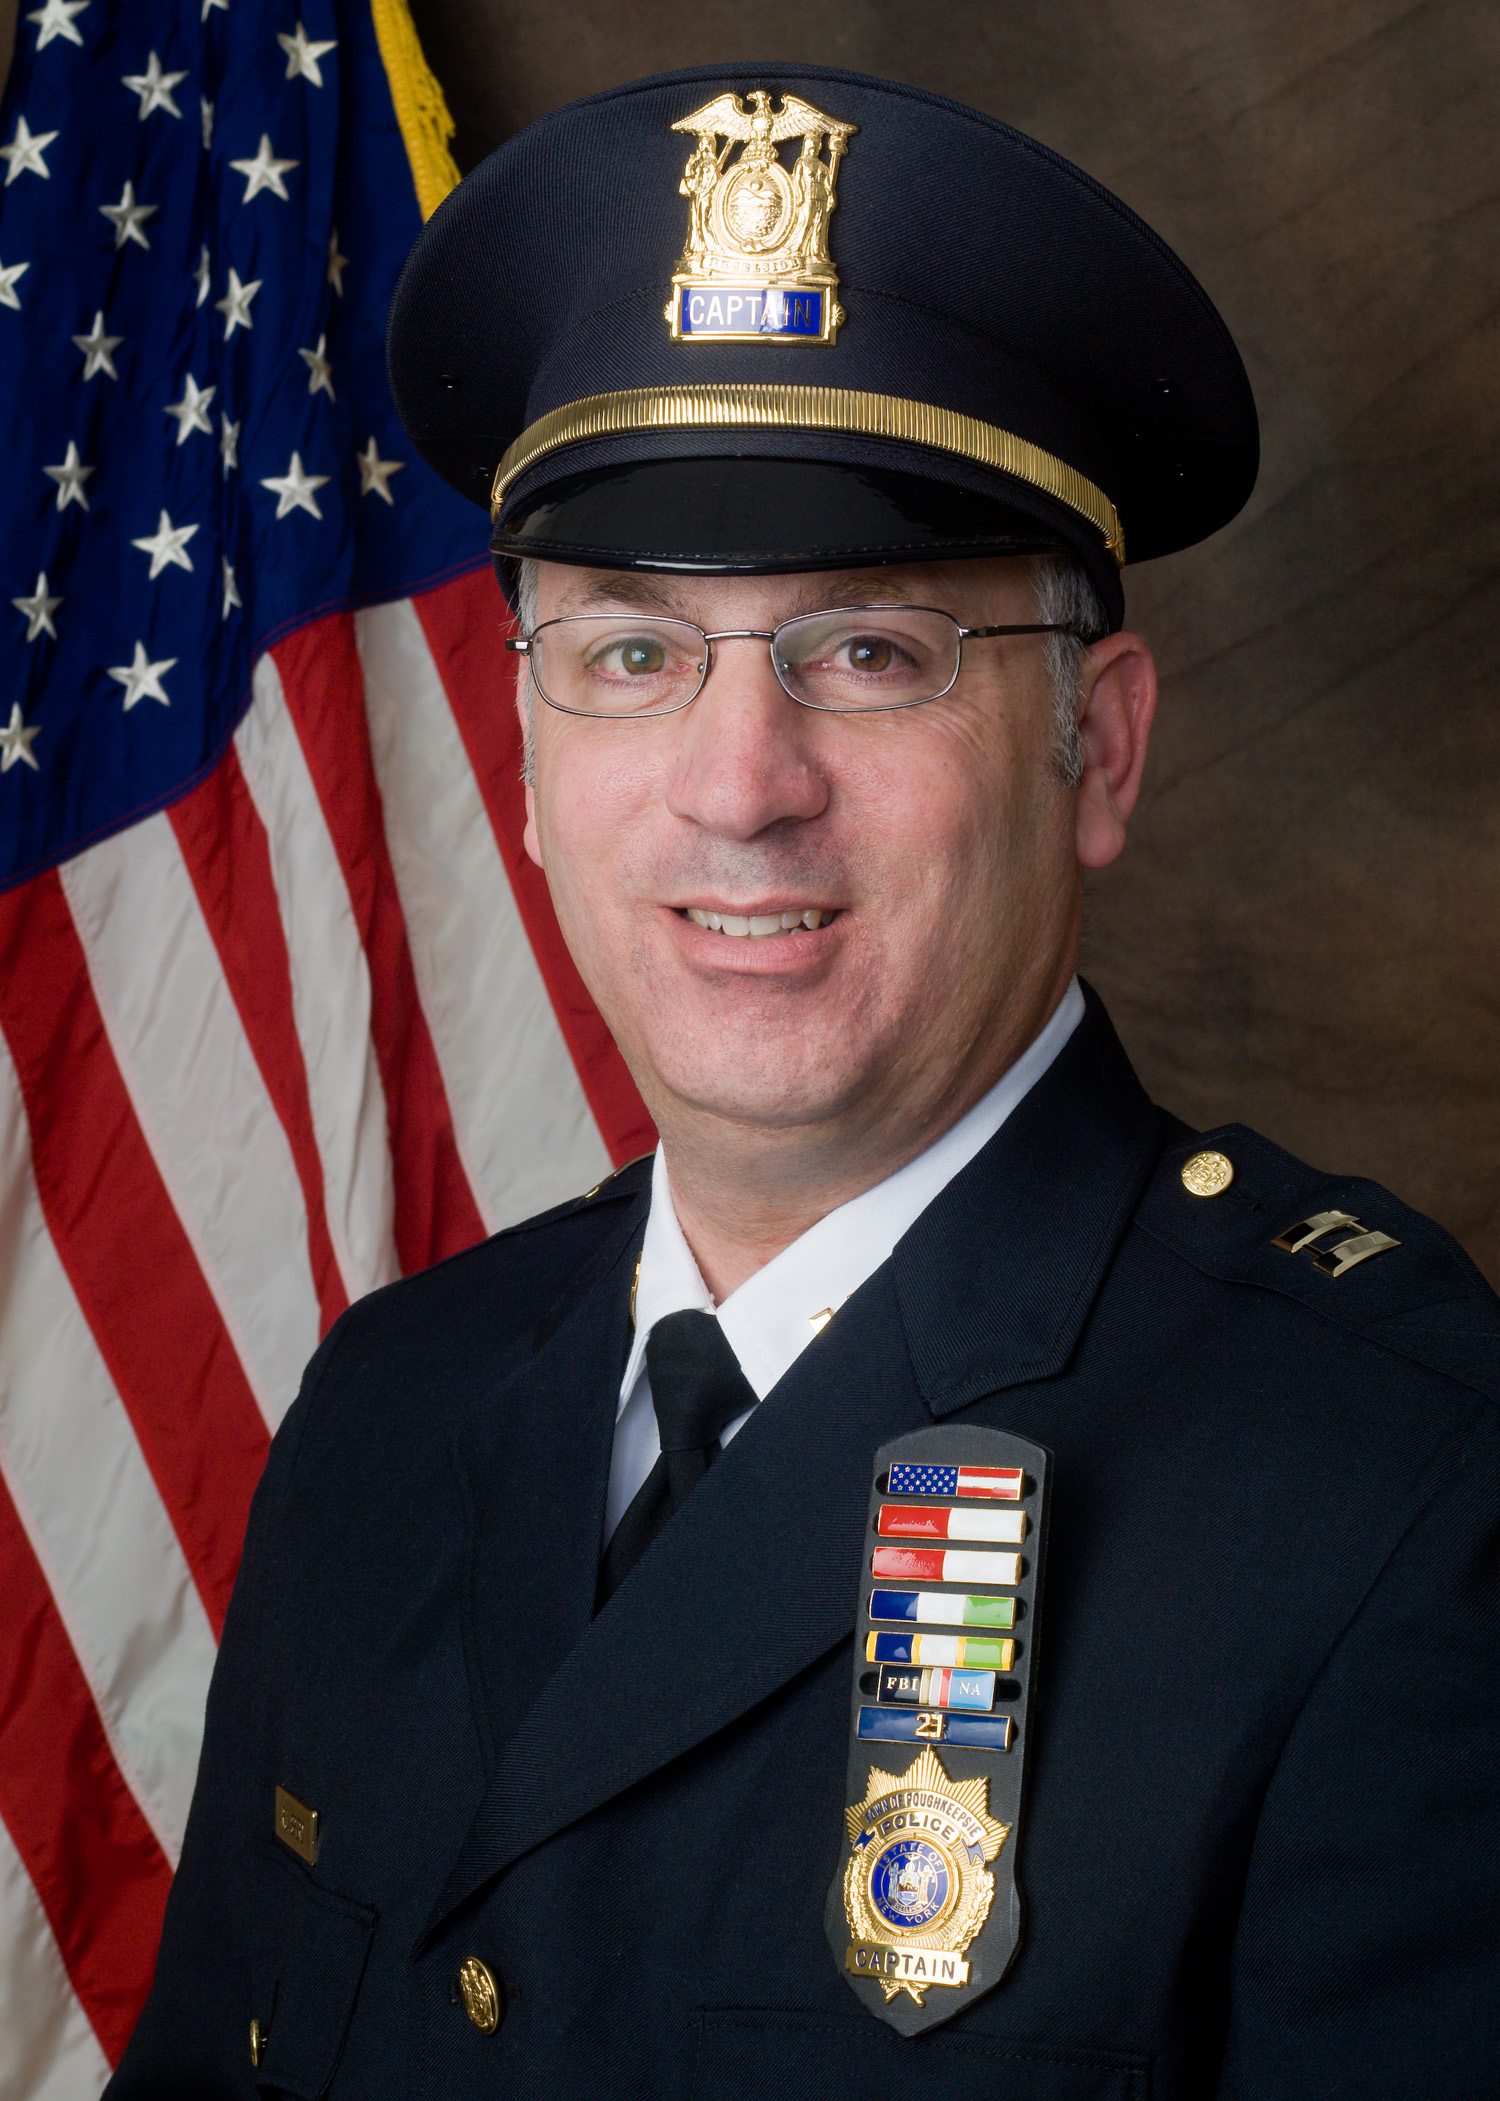 Captain Ronald J. Spero Jr.